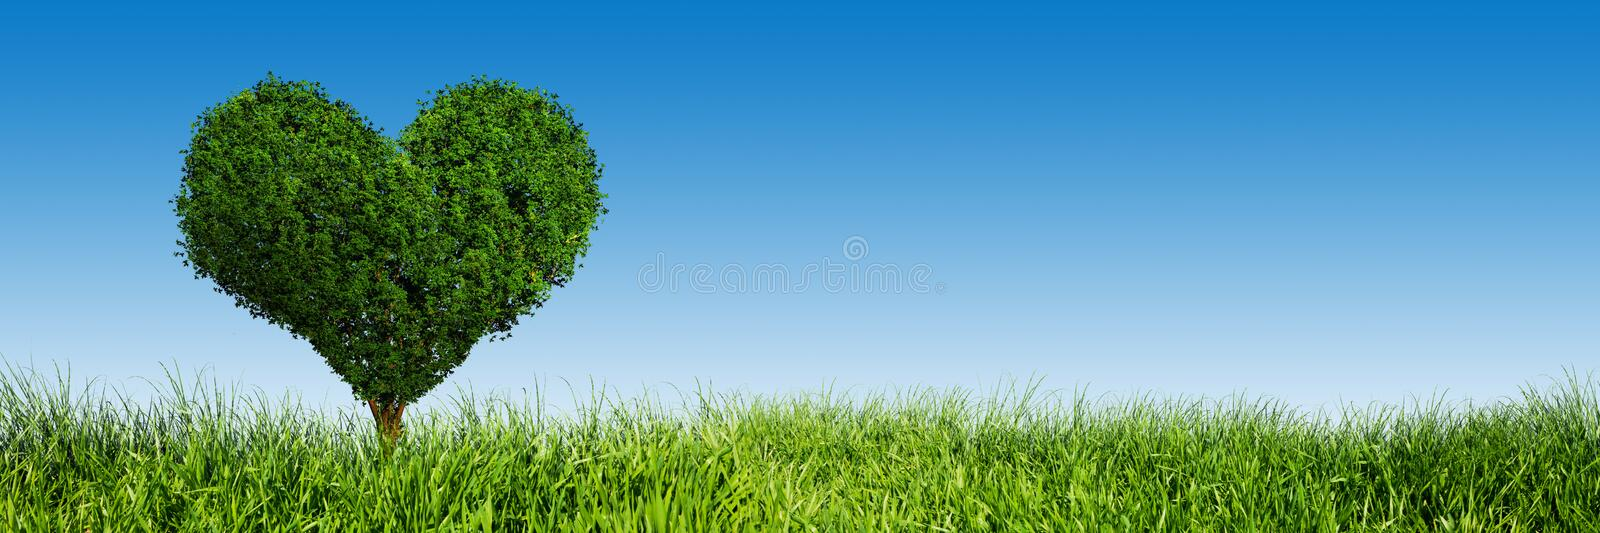 Heart shape tree on green grass. Love, panorama stock illustration